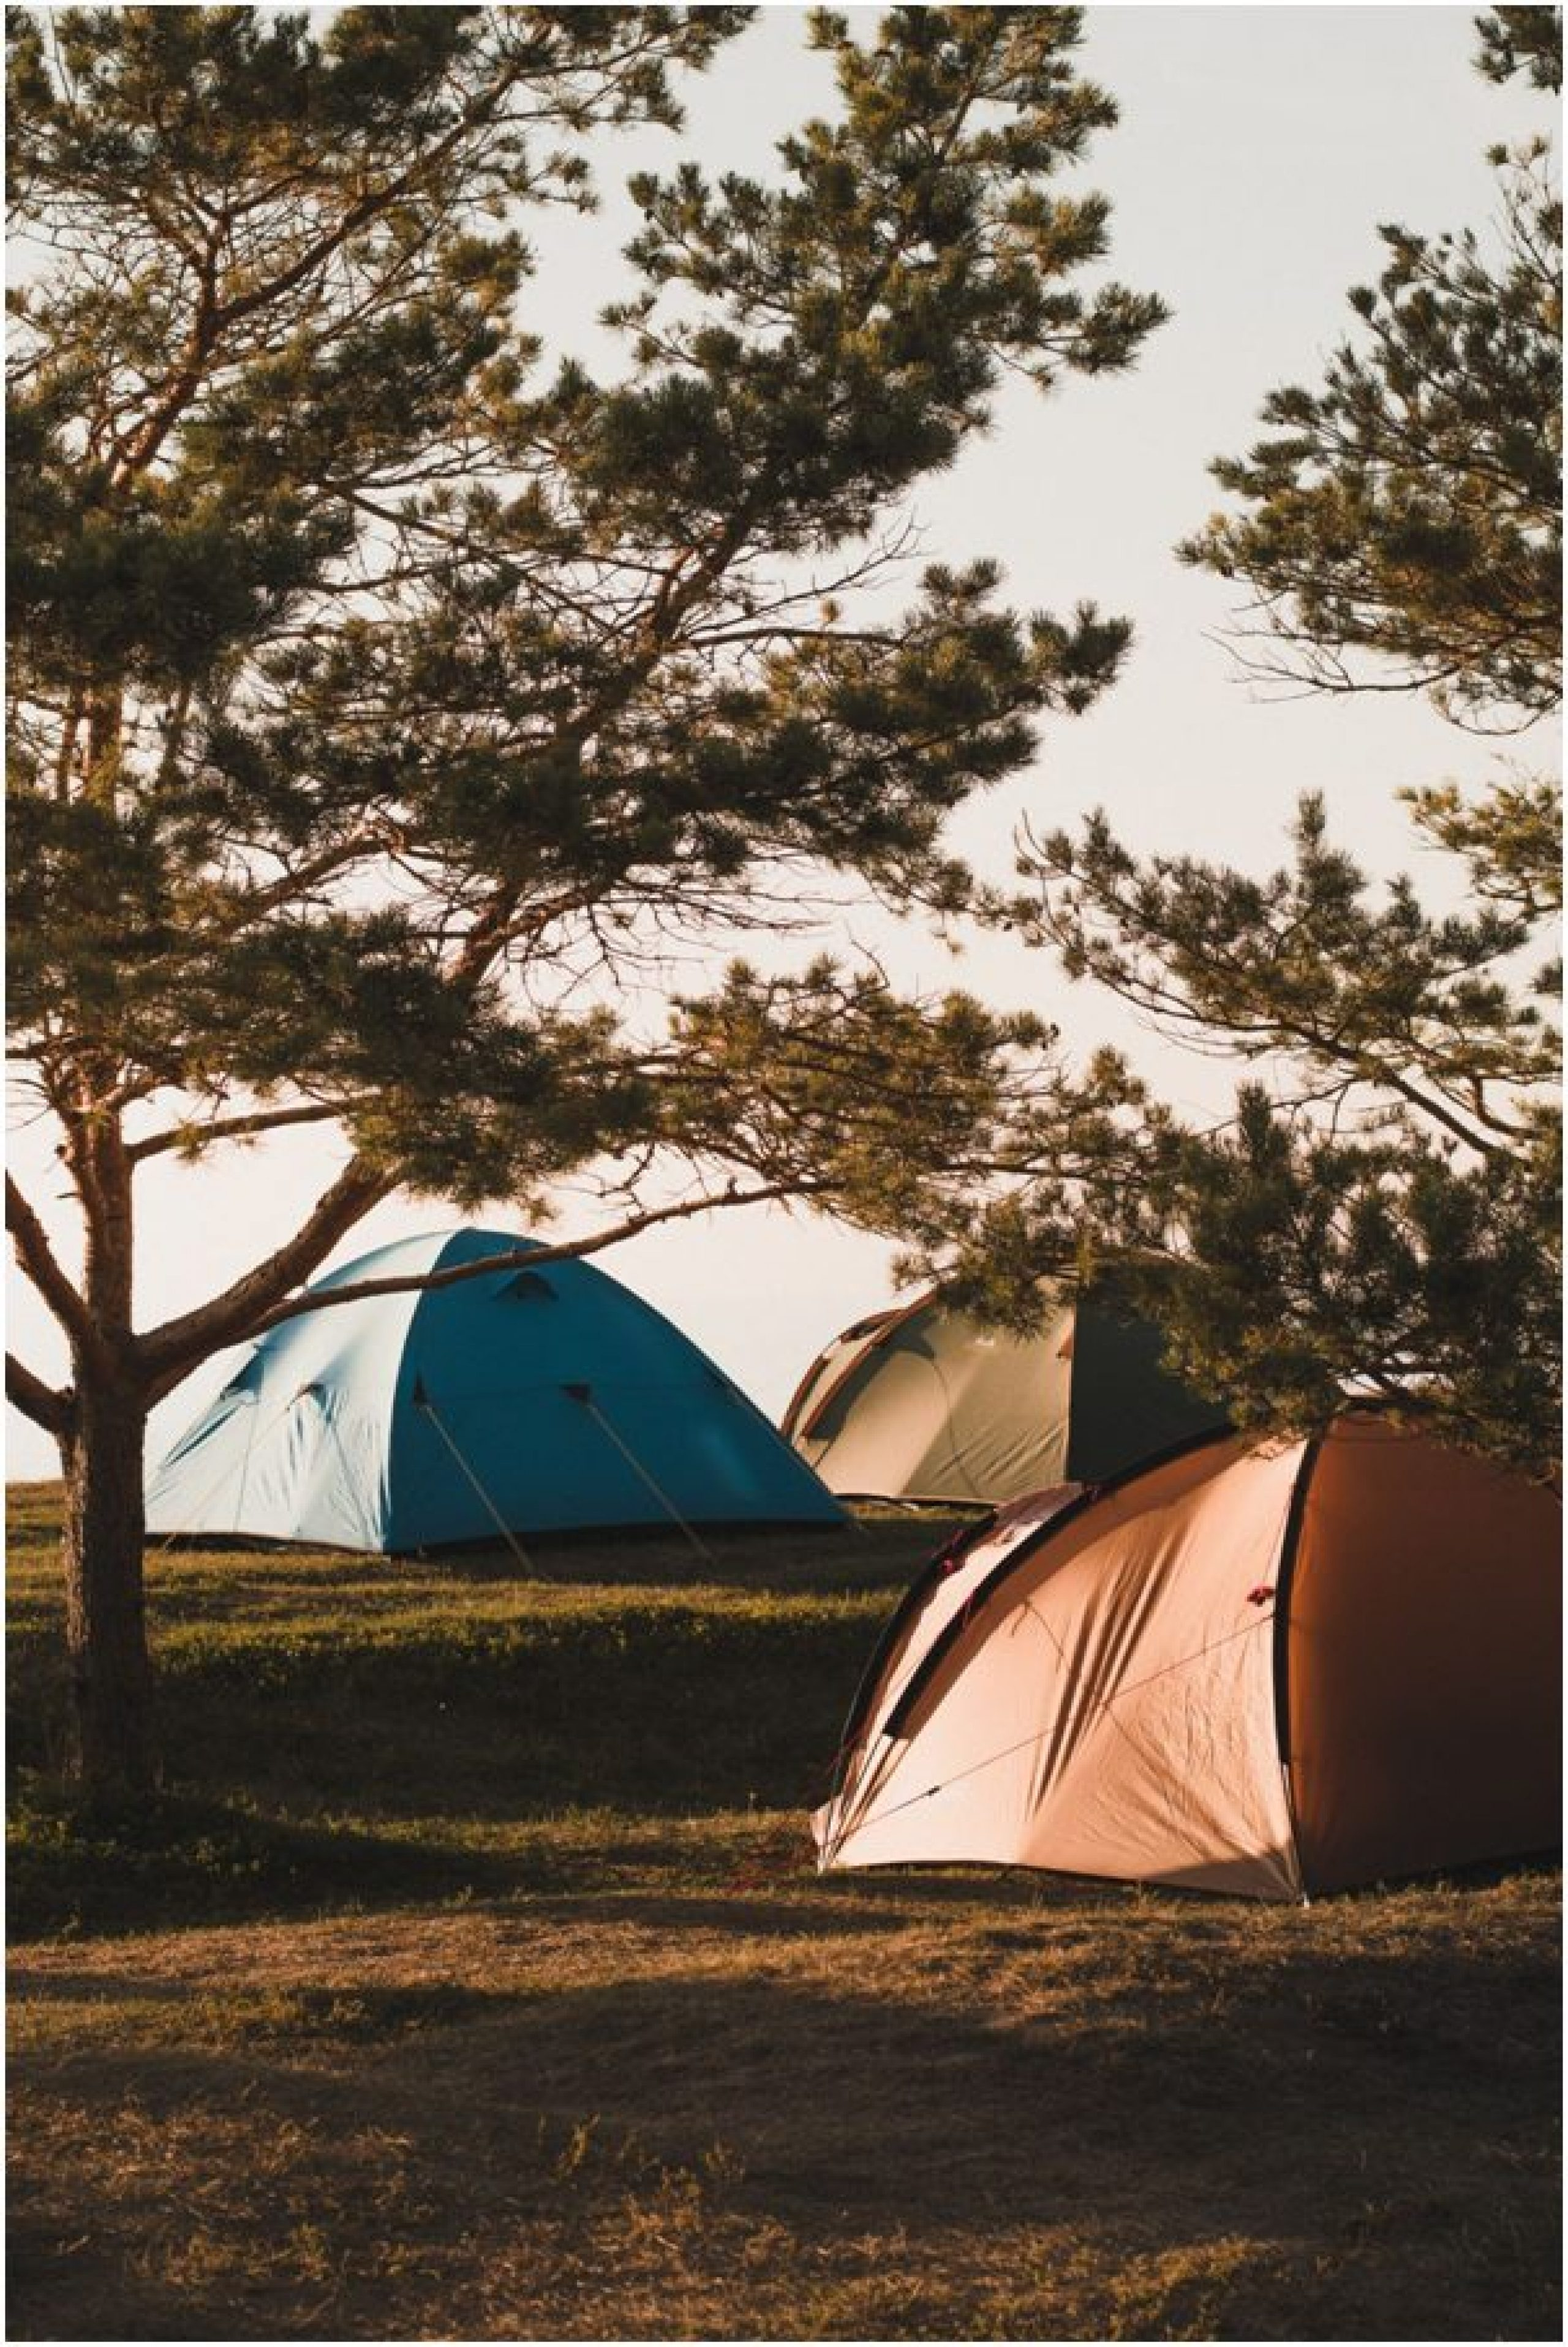 Tents at a camping site